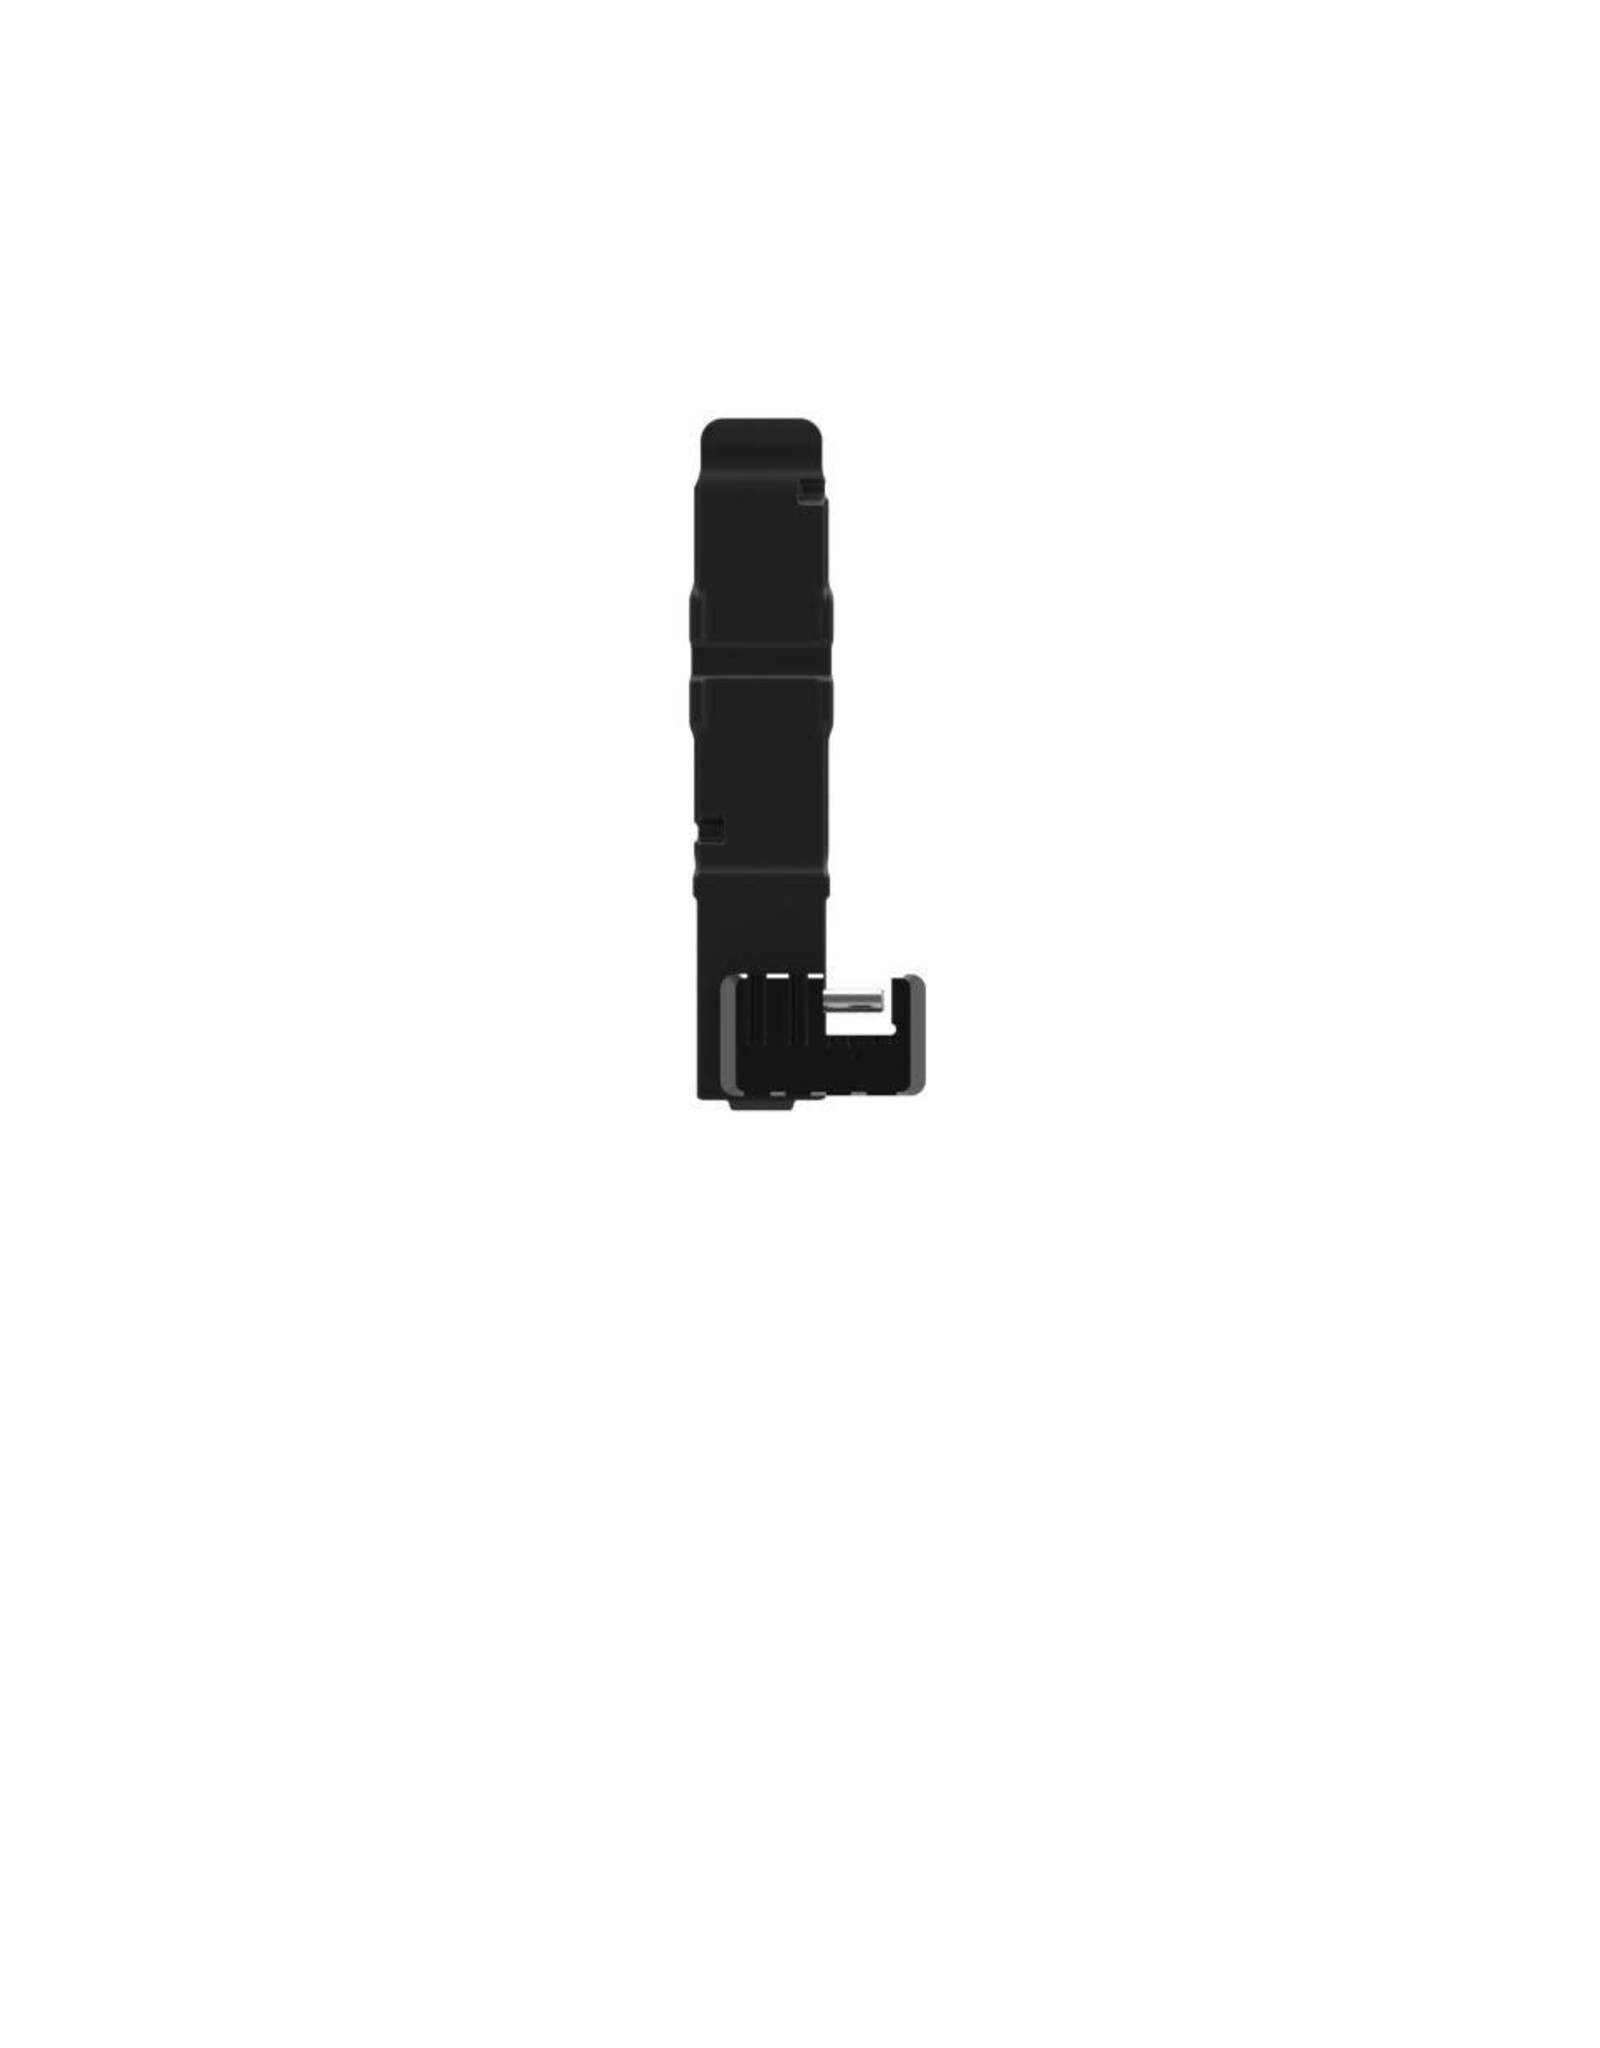 OneUp One Up EDC Tool System, V2, Black